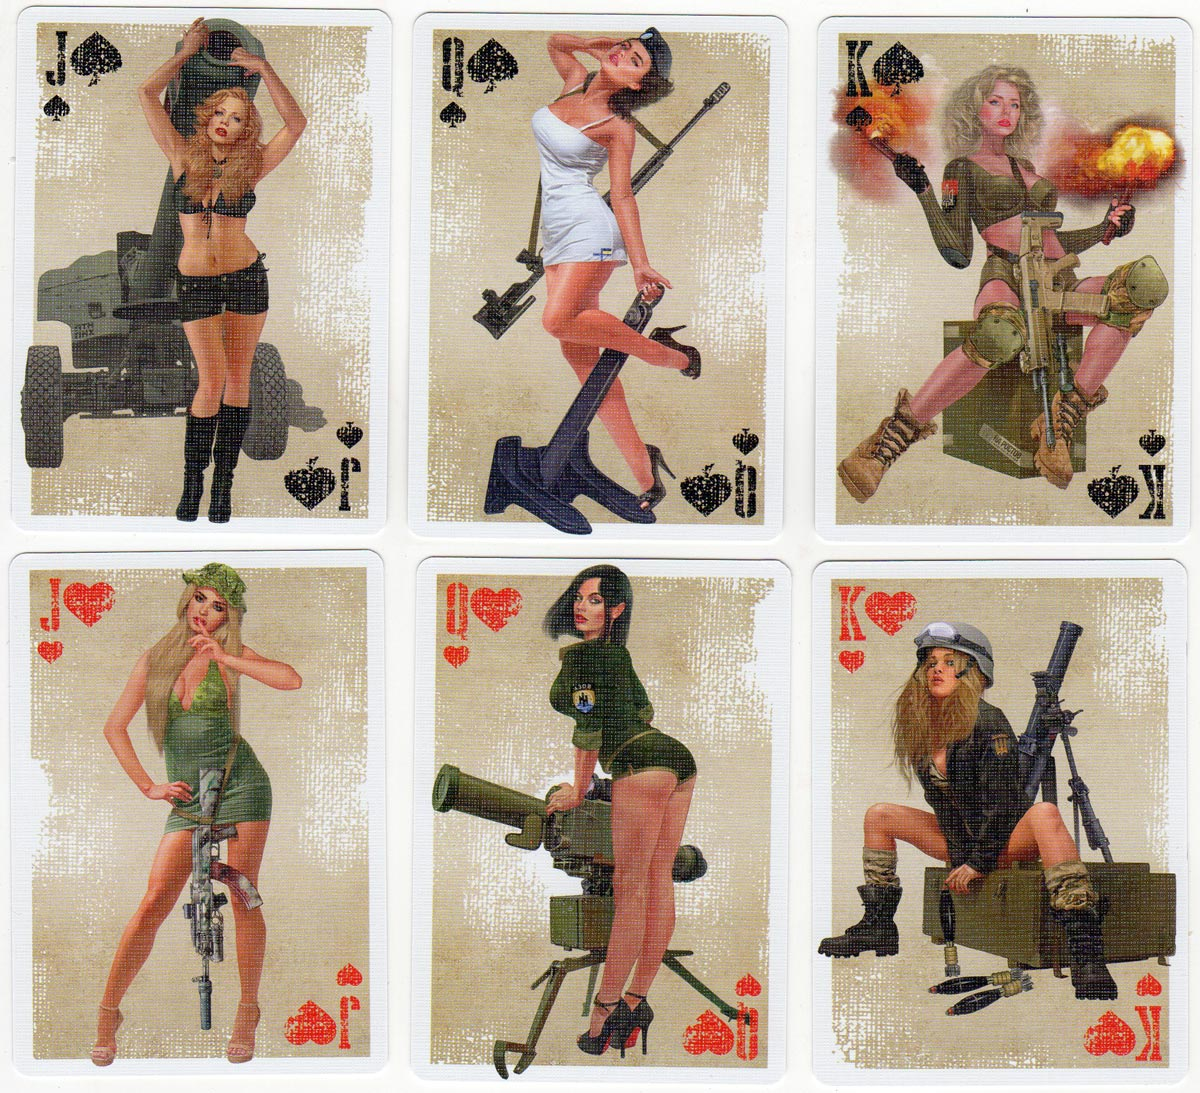 Military Pin Up playing cards created by Sviatoslay Pashchuk, 2019